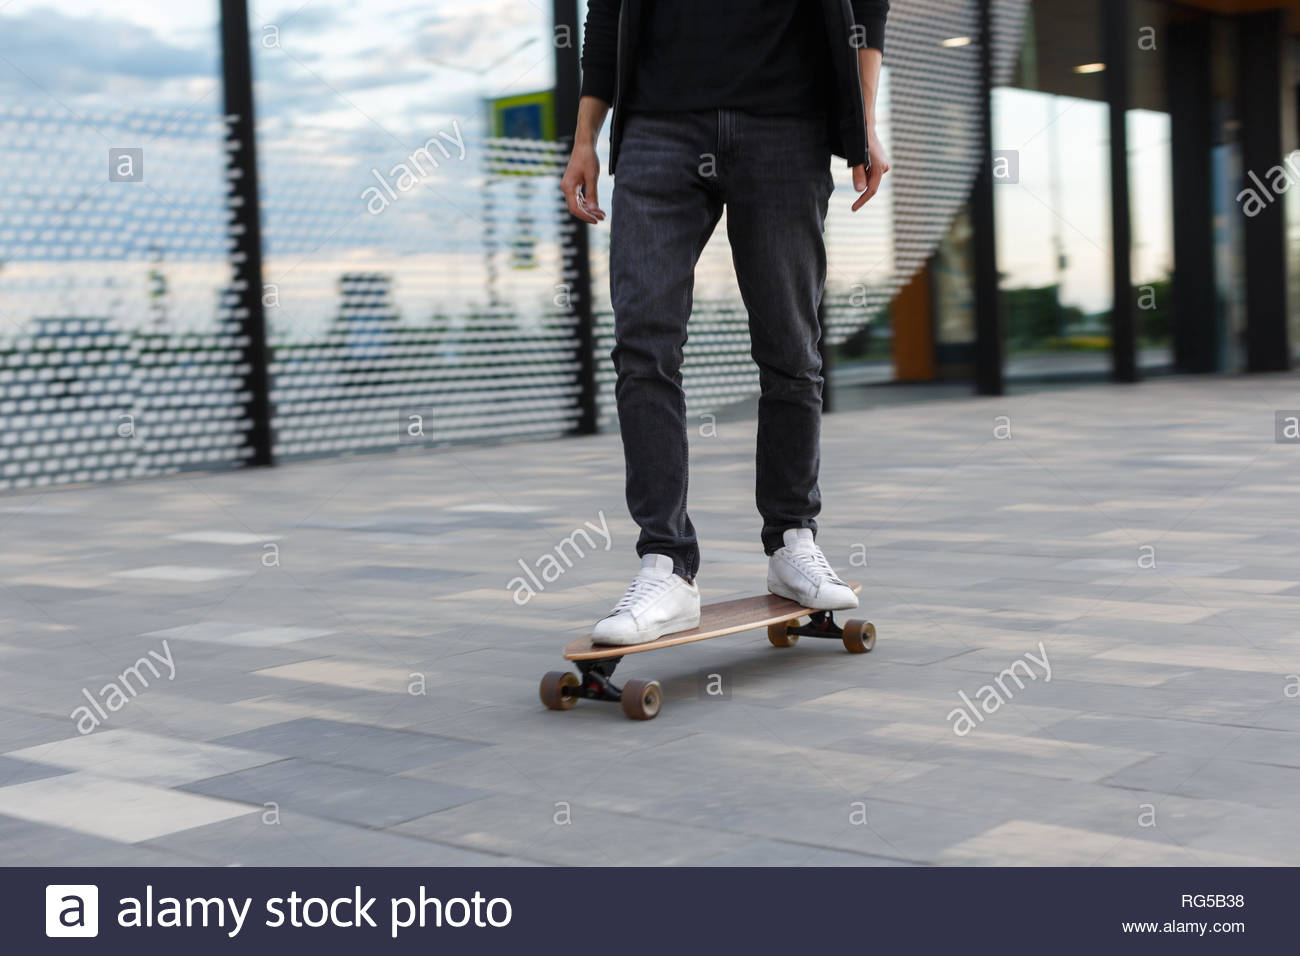 Close up shot of young man in black jeans and white sneakers riding a longboard to the left in urban area hurry on a date in motion wooden longboard